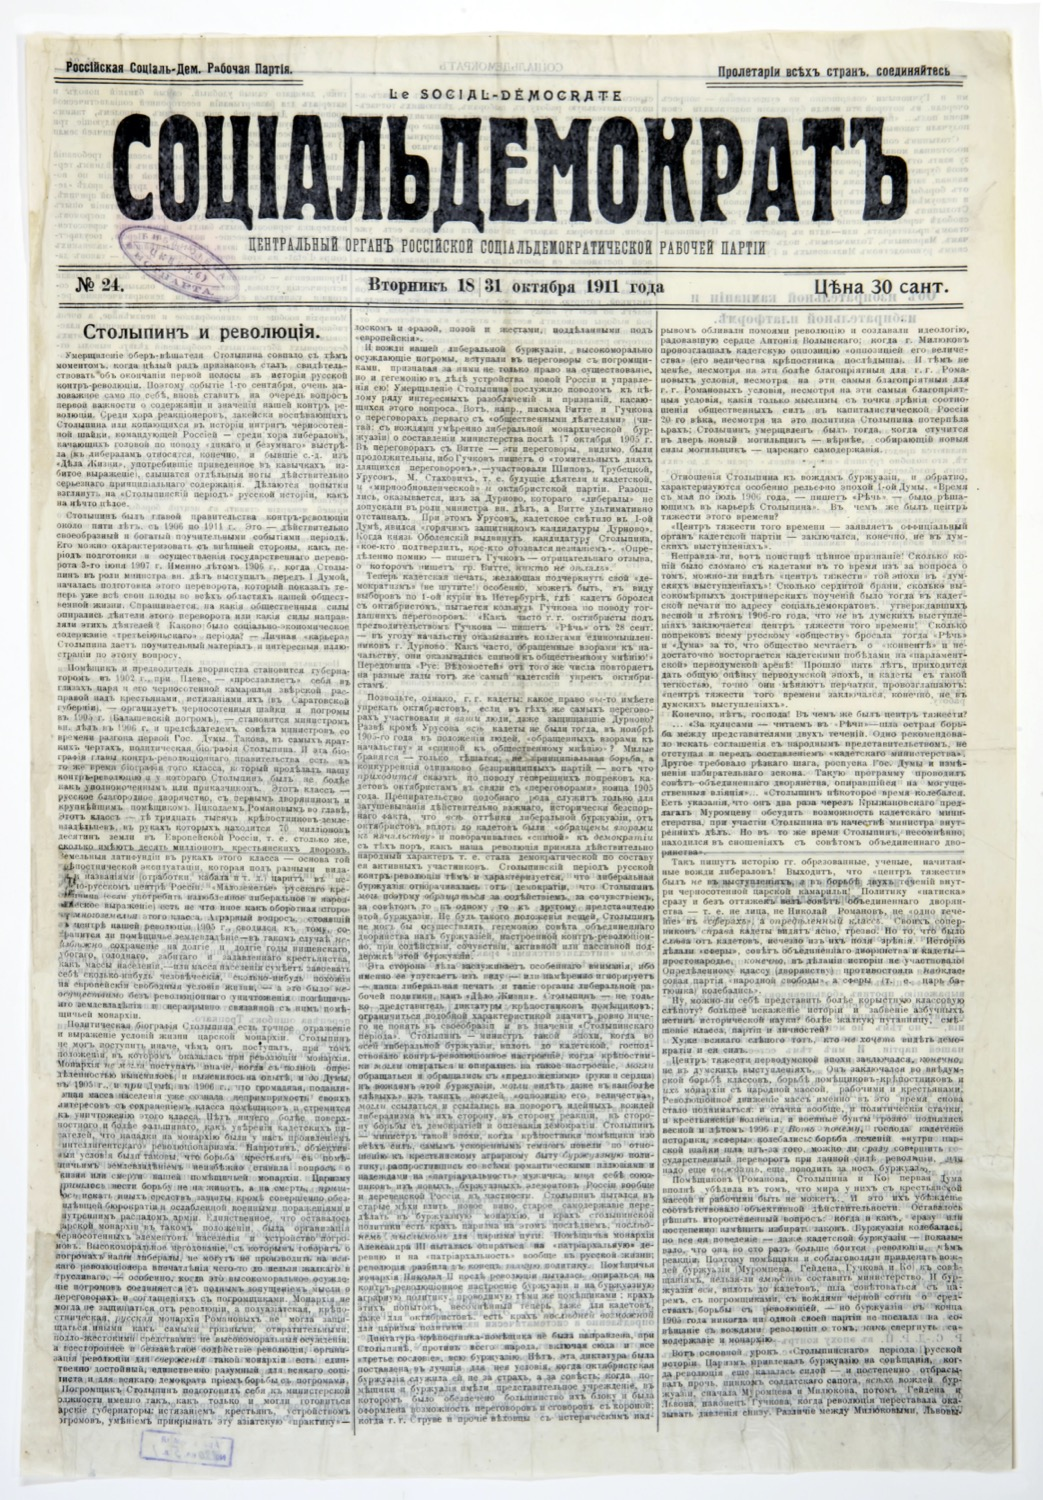 """Article by V.I. Lenin """"Stolypin and Revolution,"""" published in the newspaper """"Social Democrat."""""""